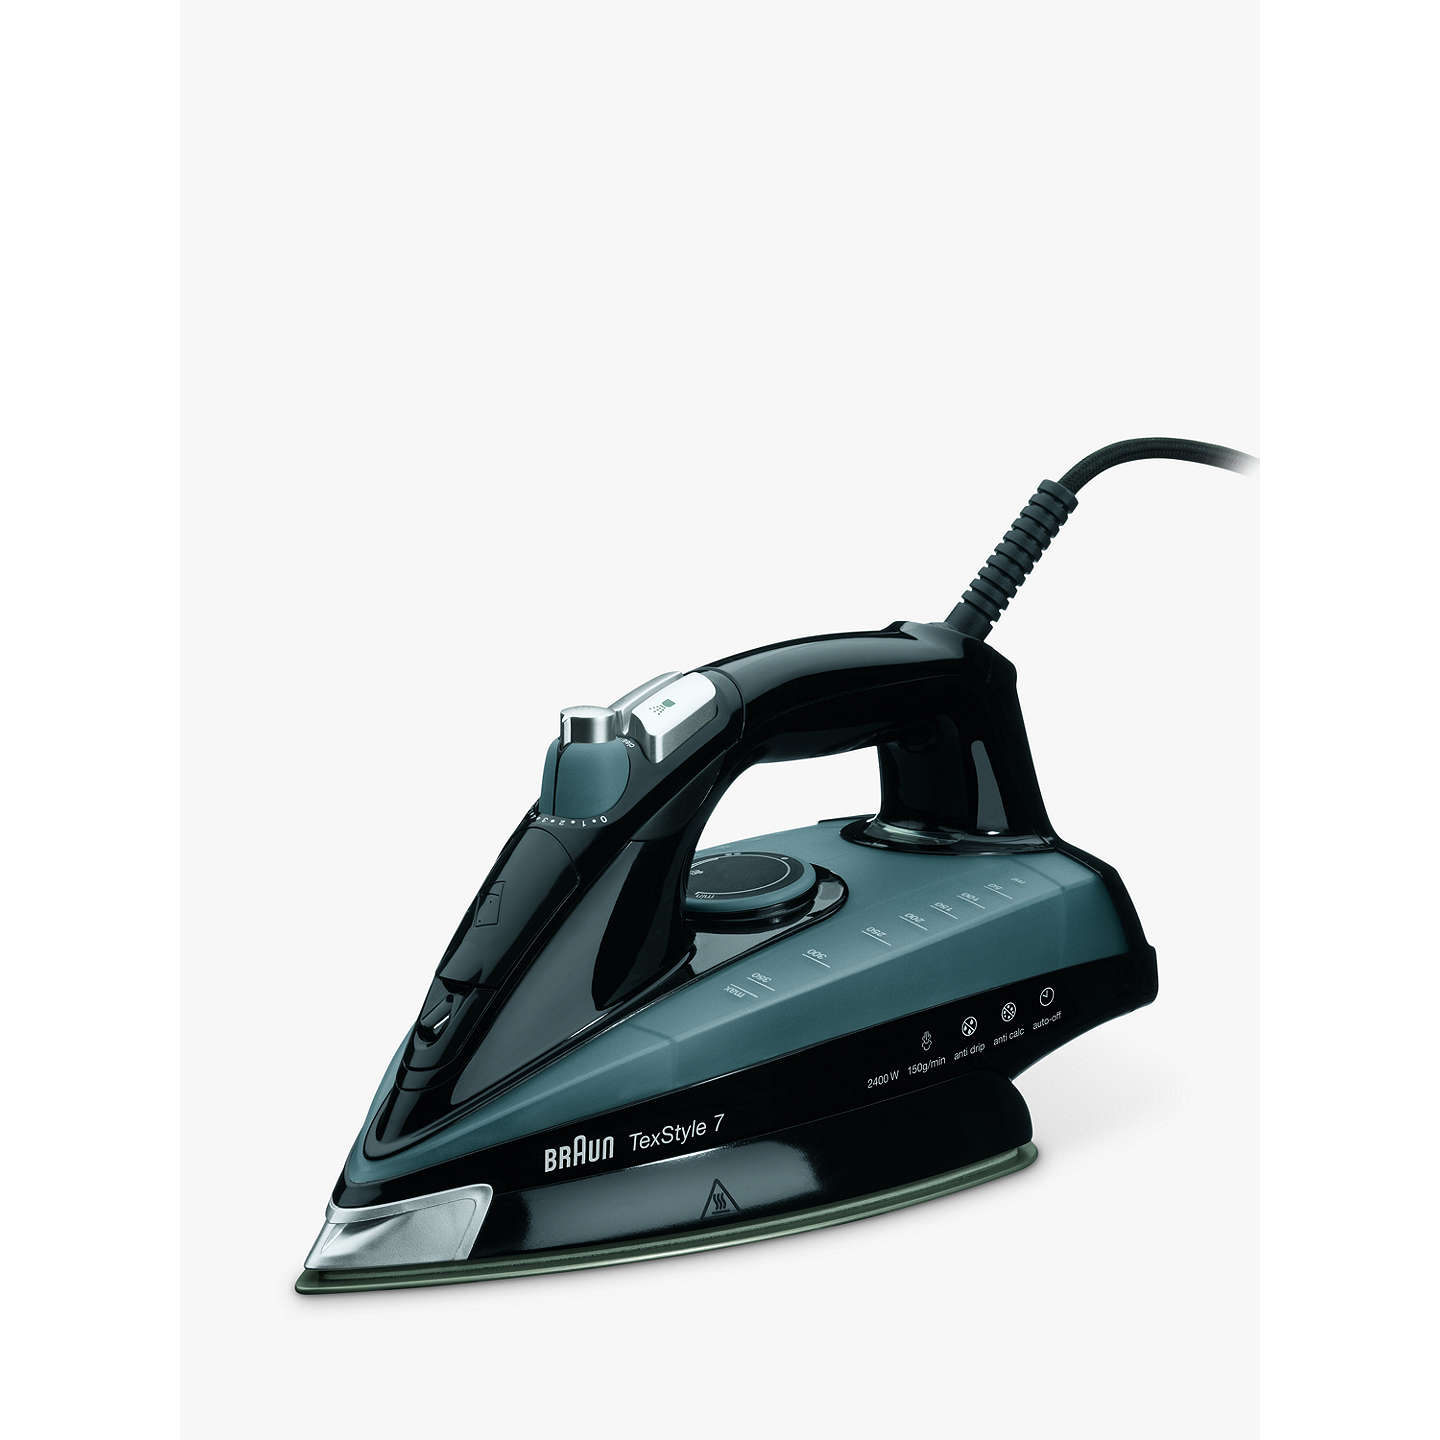 braun ts745a texstyle 7 steam iron at john lewis. Black Bedroom Furniture Sets. Home Design Ideas